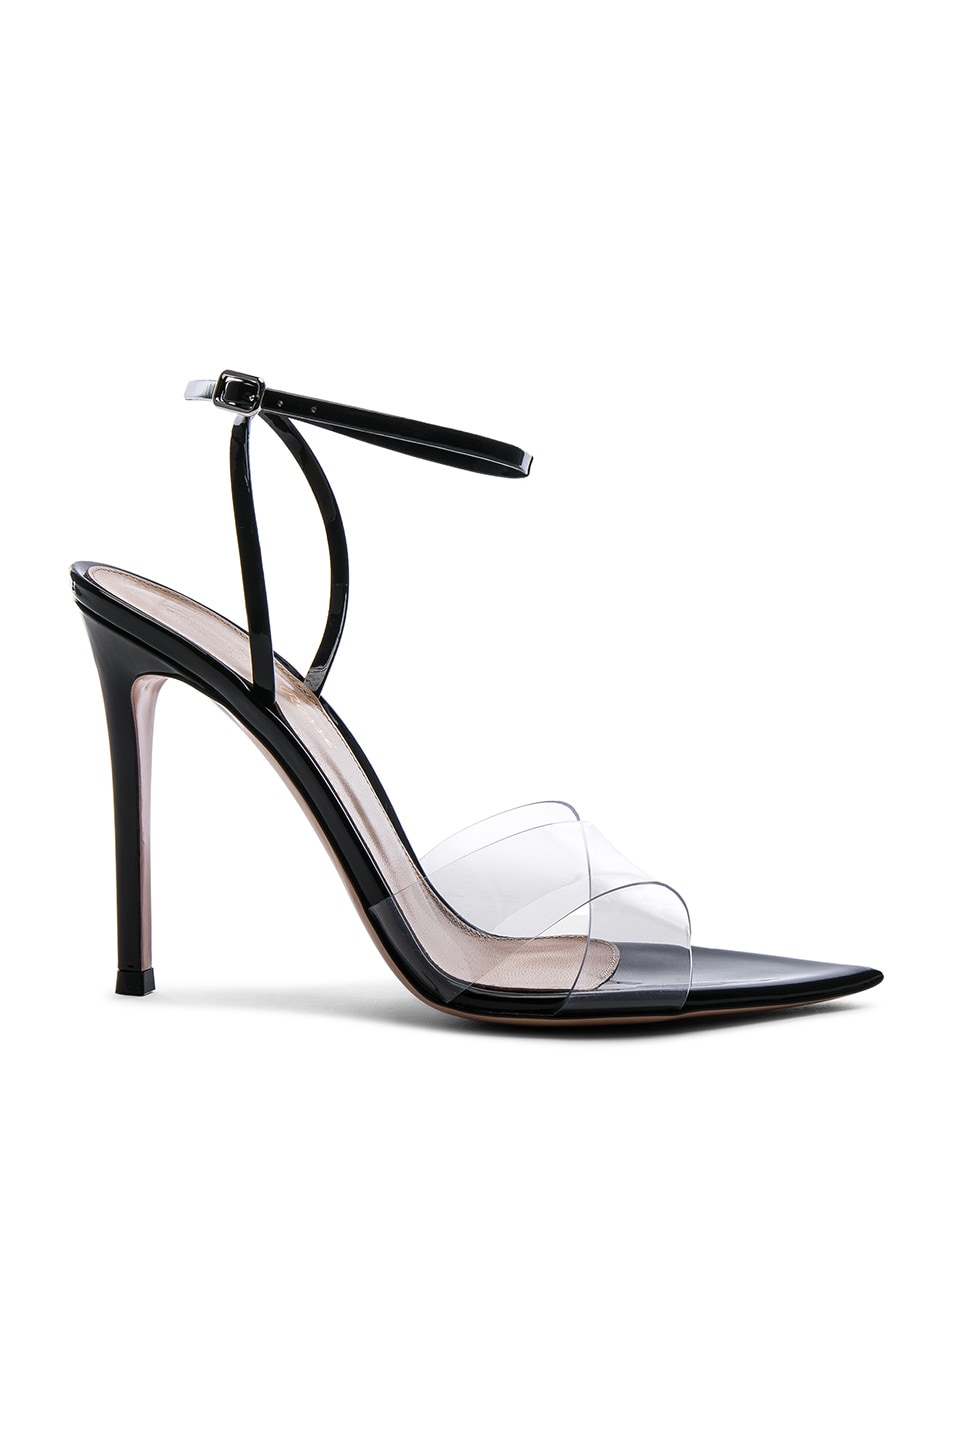 Image 1 of Gianvito Rossi Patent & Plexi Ankle Strap Stark Sandals in Transparent & Black